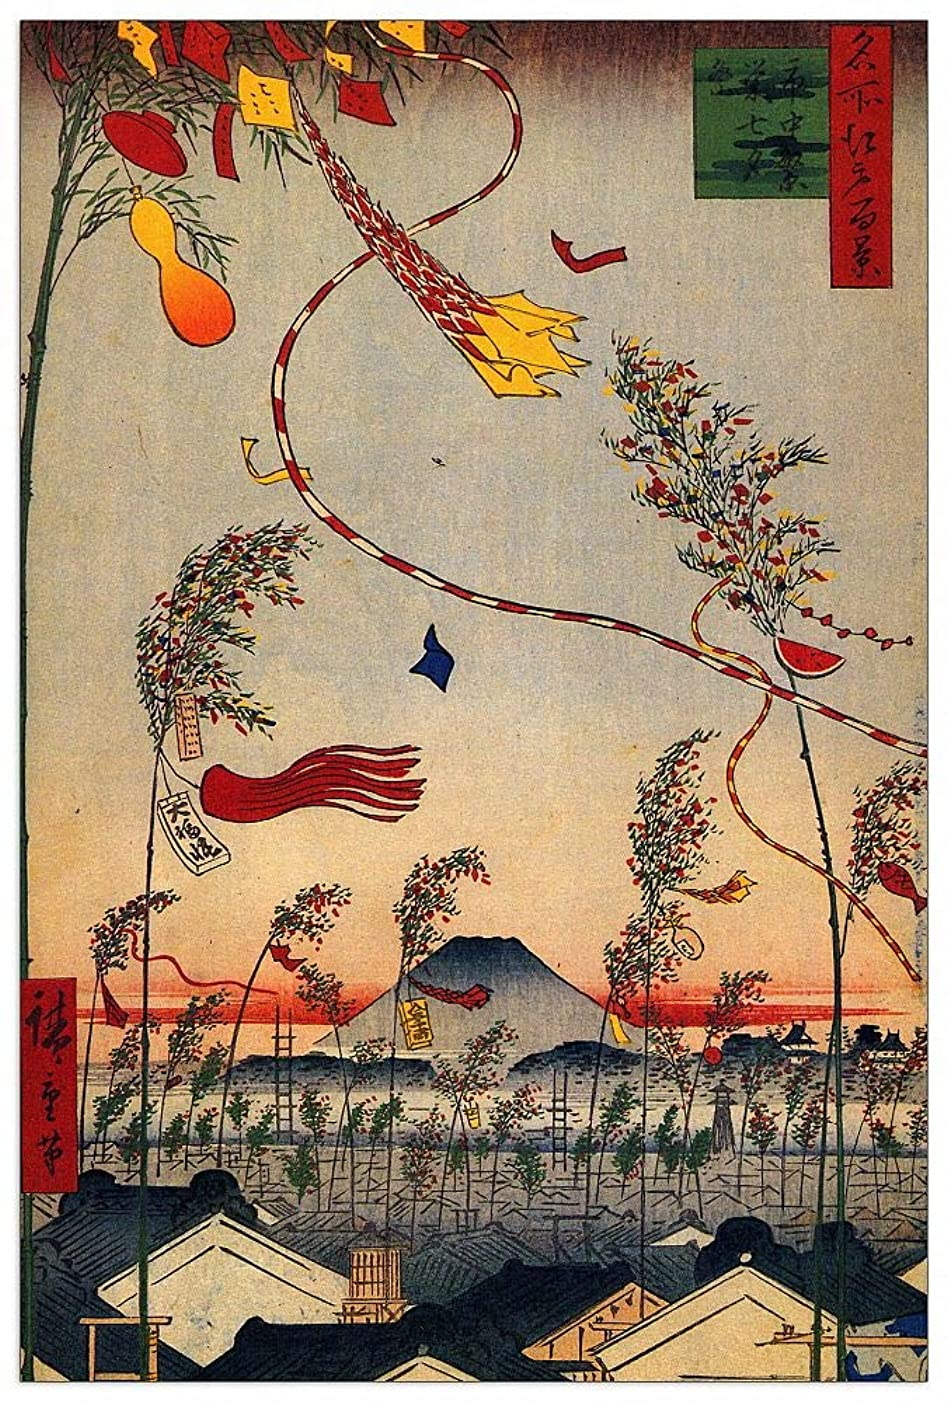 ArtPlaza TW92967 Hiroshige Utagawa - Tanabata Festival Decorative Panel 27.5x39.5 Inch Multicolored